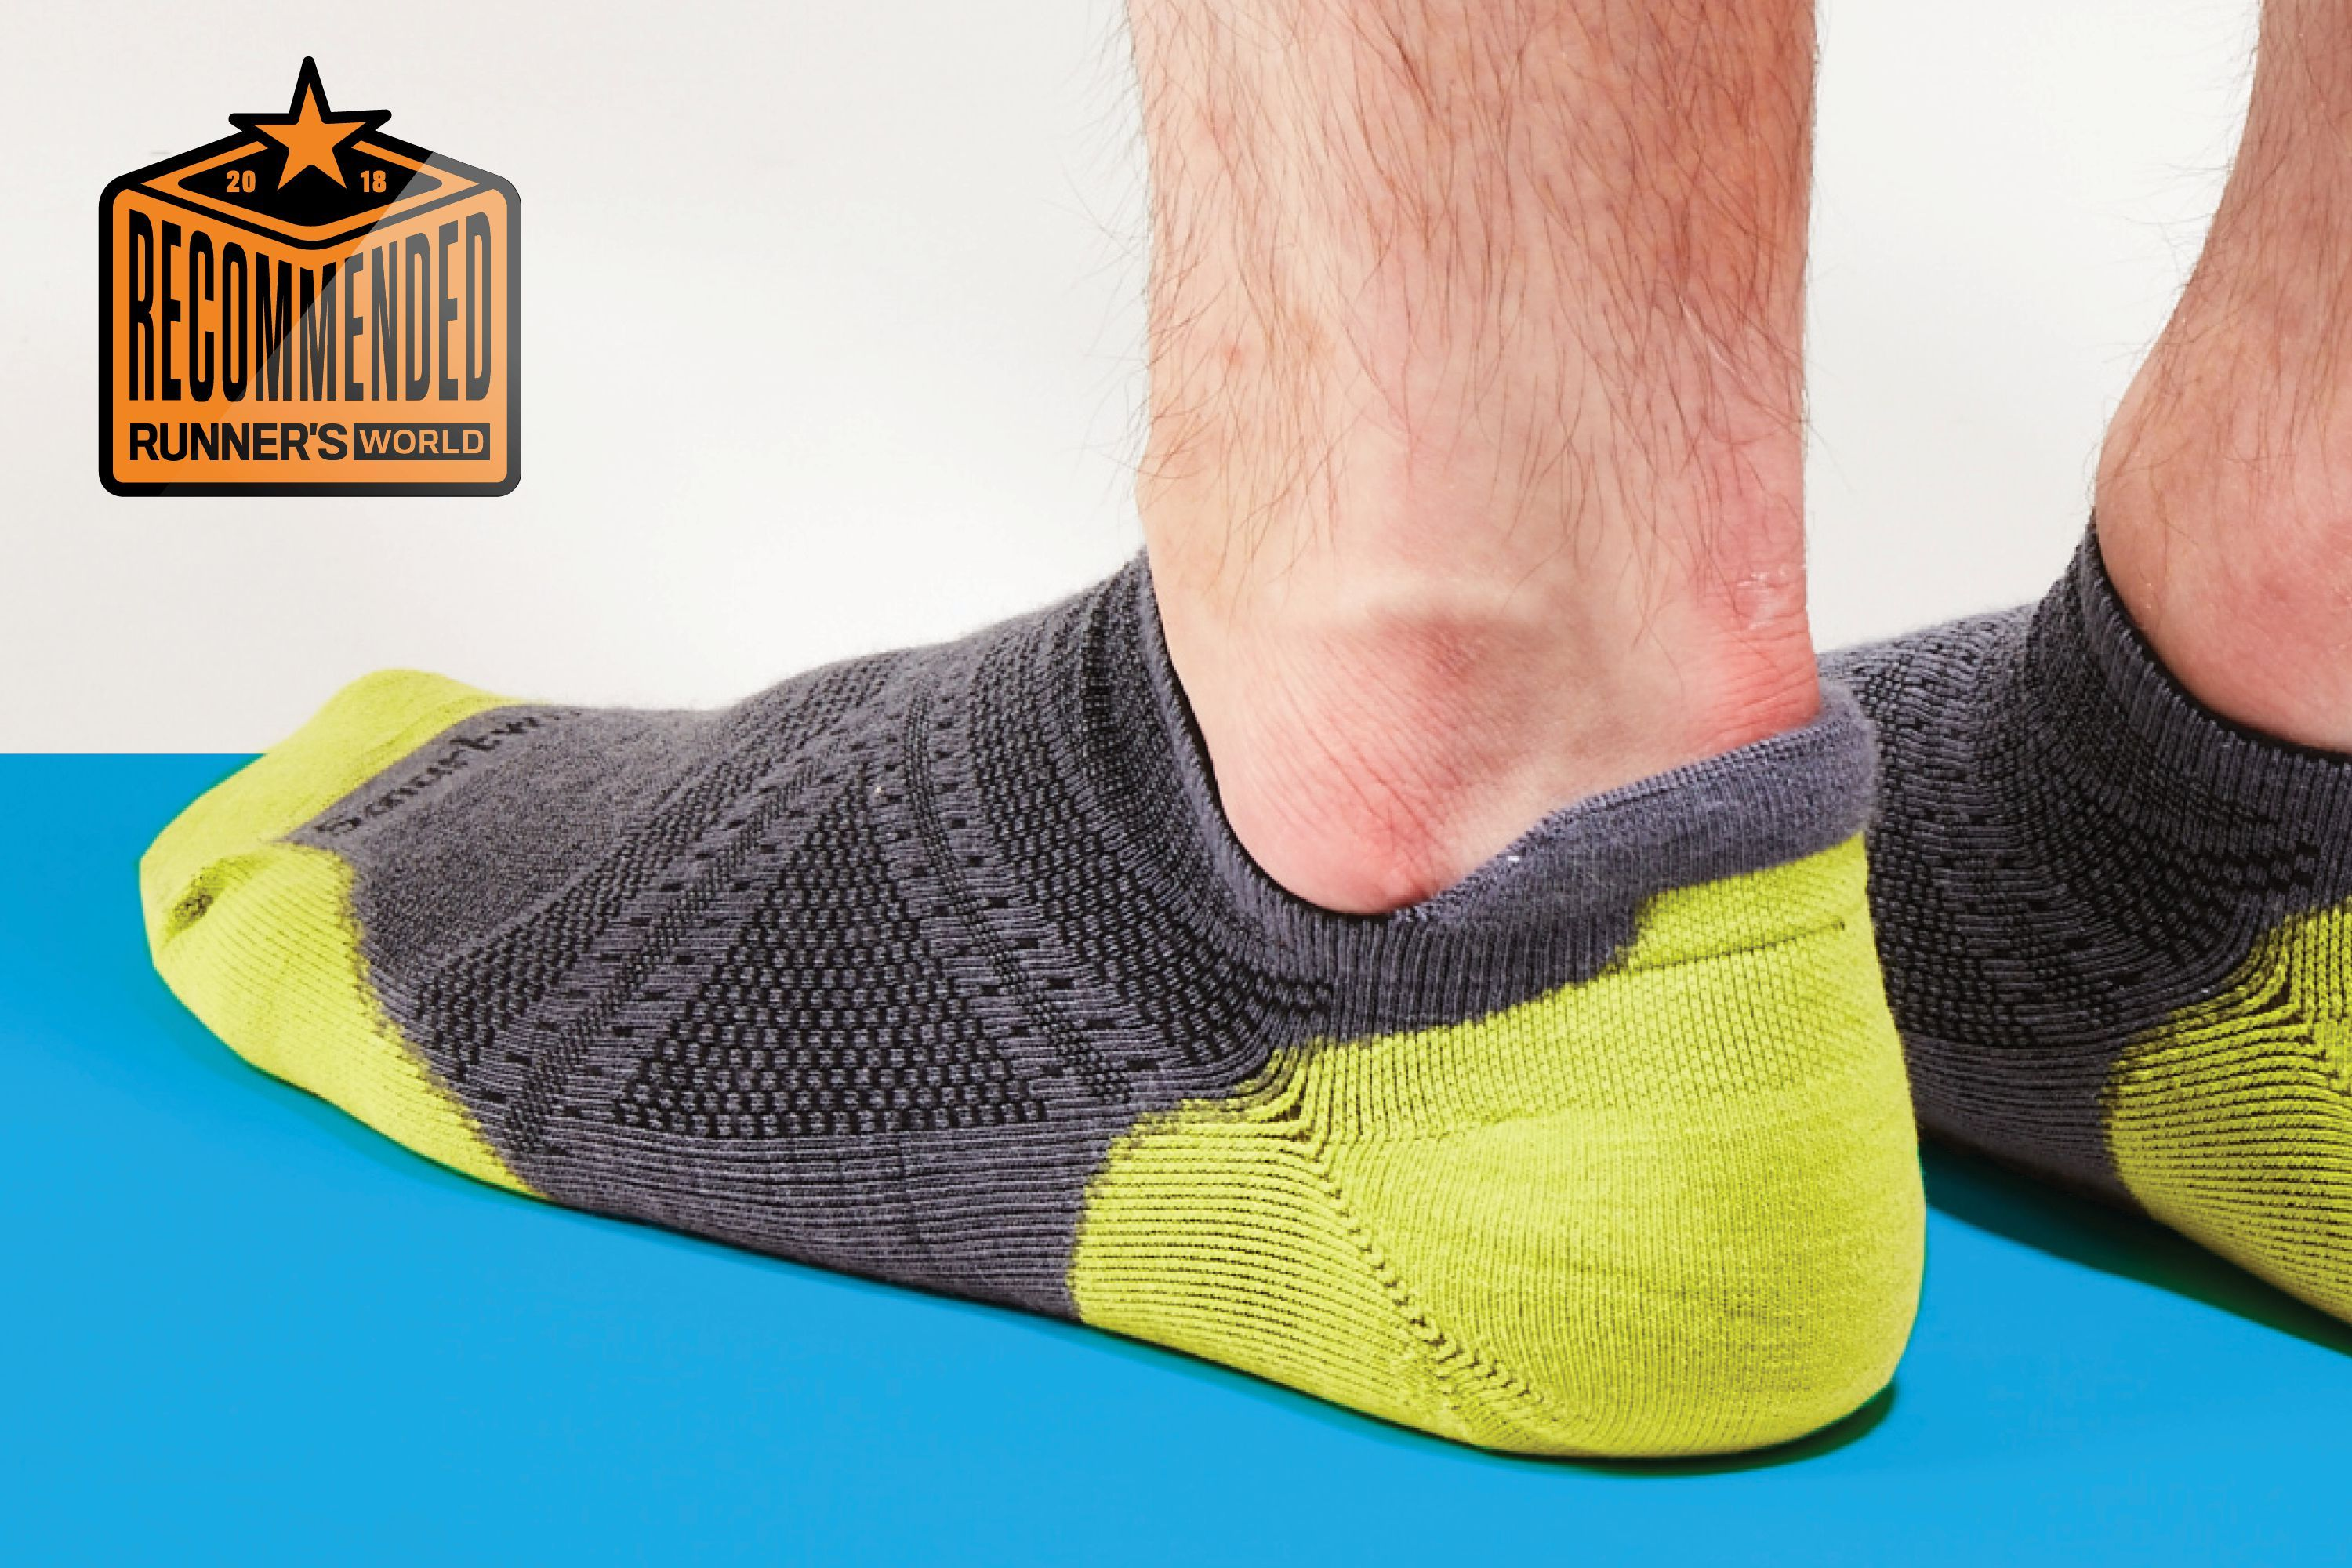 7a3535669 Best Running Socks - Most Comfortable Socks 2019